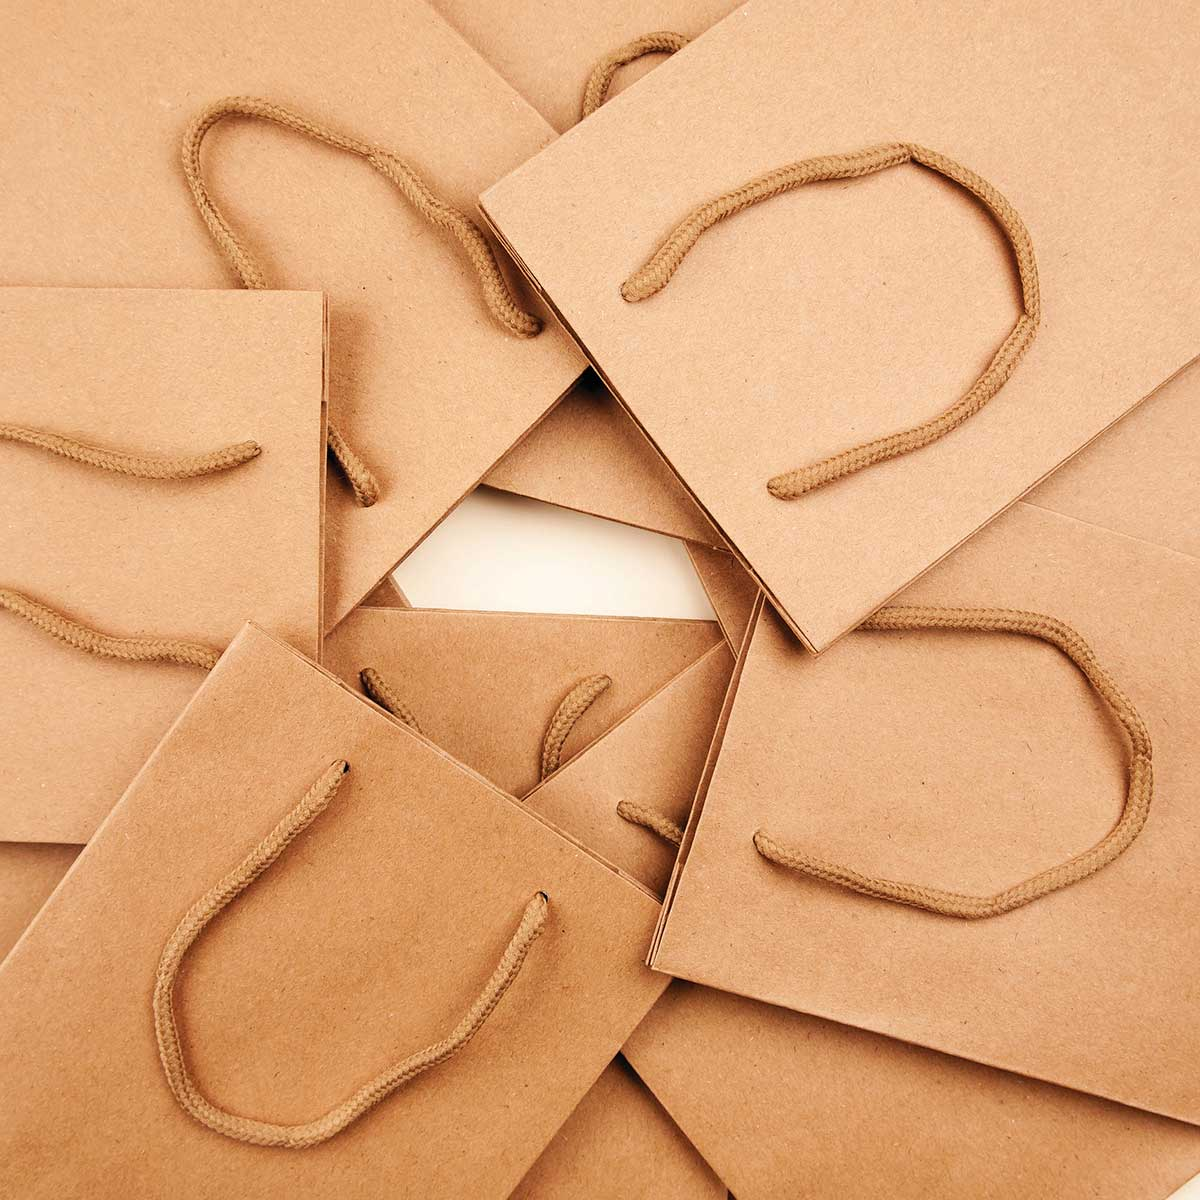 Paper Bag - Craft Paper